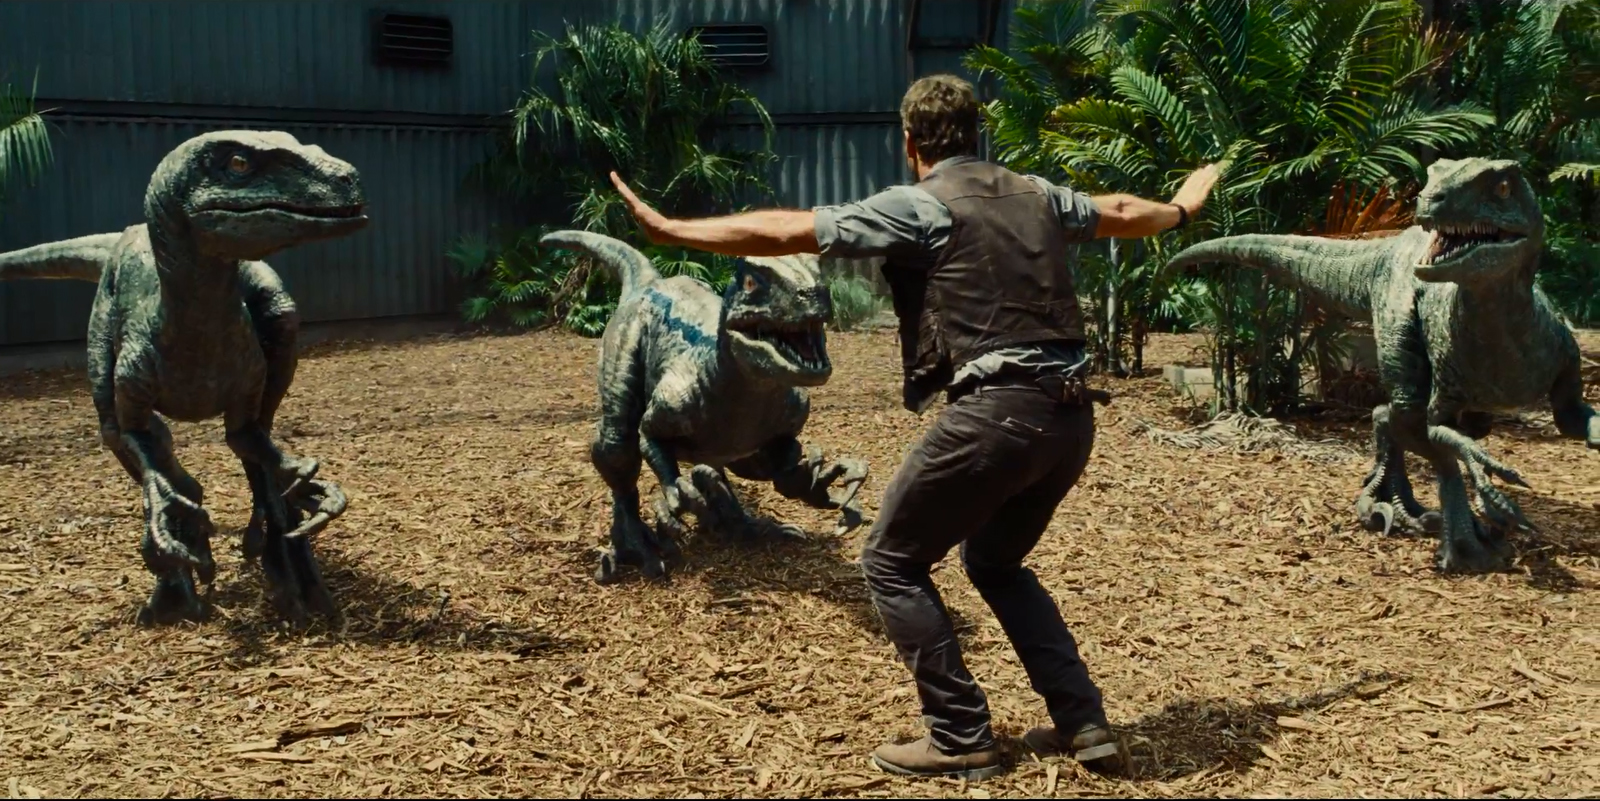 jurassic world raptors